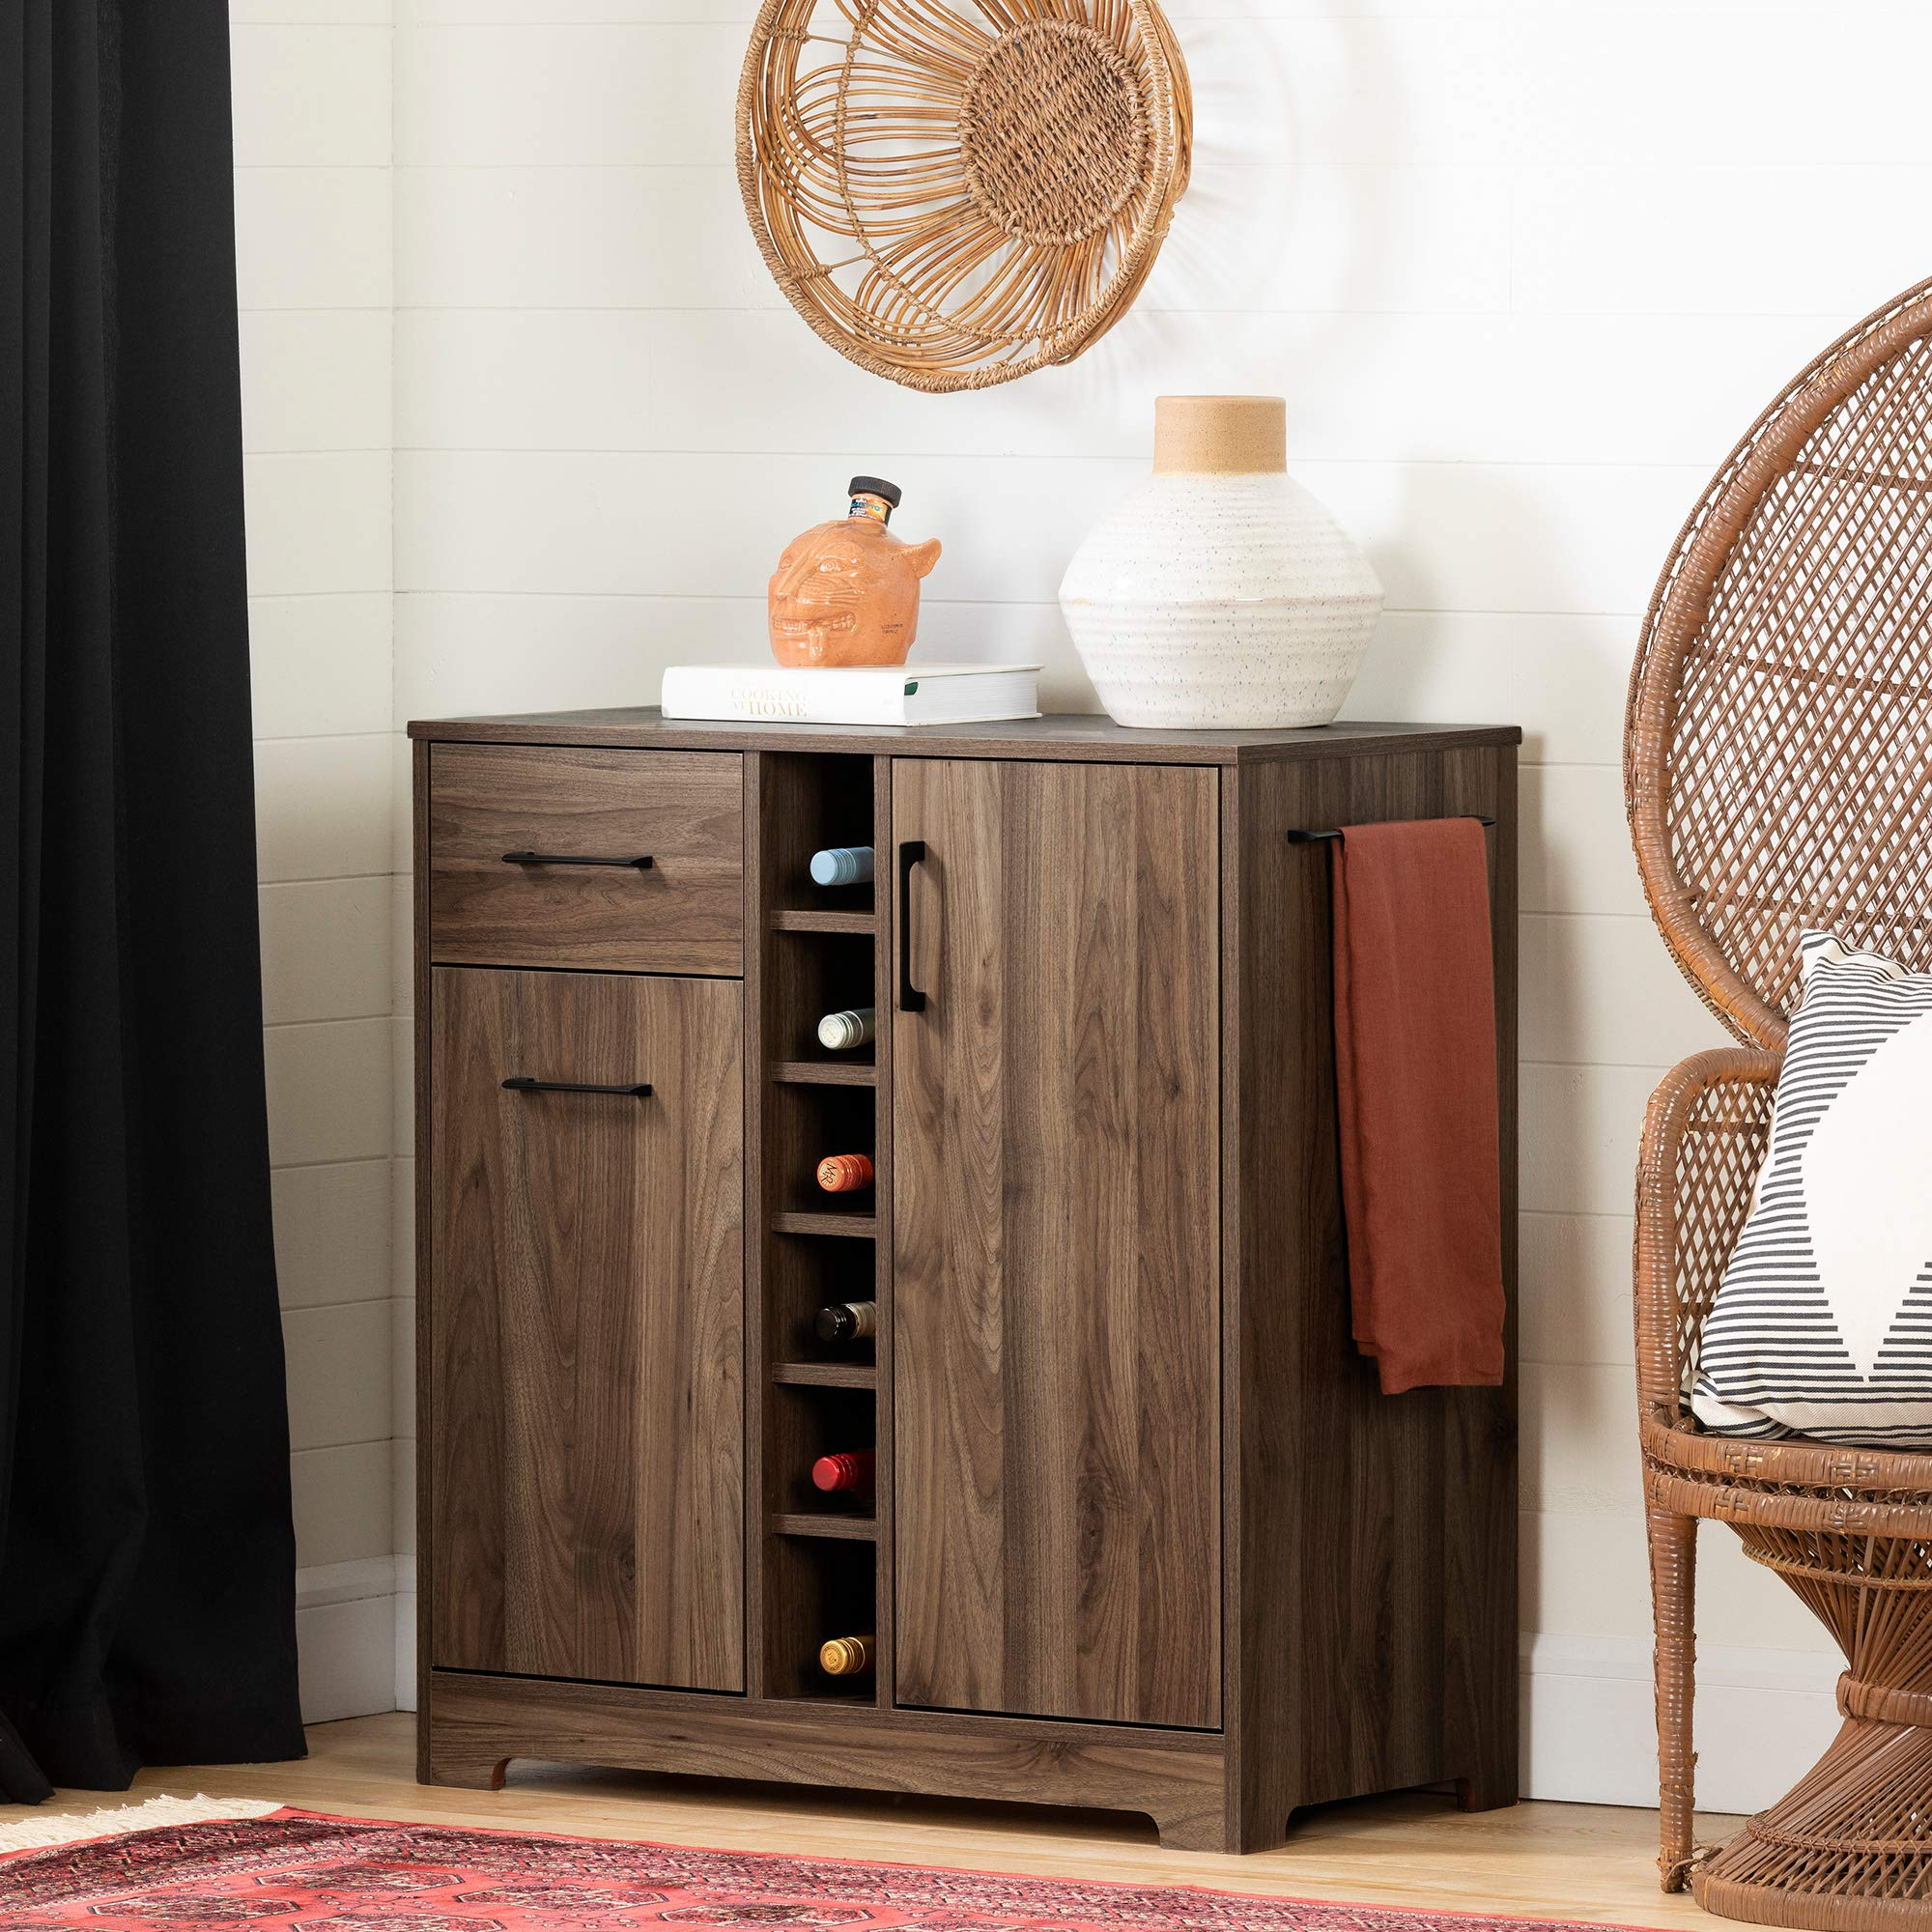 South Shore Vietti Bar Cabinet and Bottle Storage-Natural Walnut by South Shore